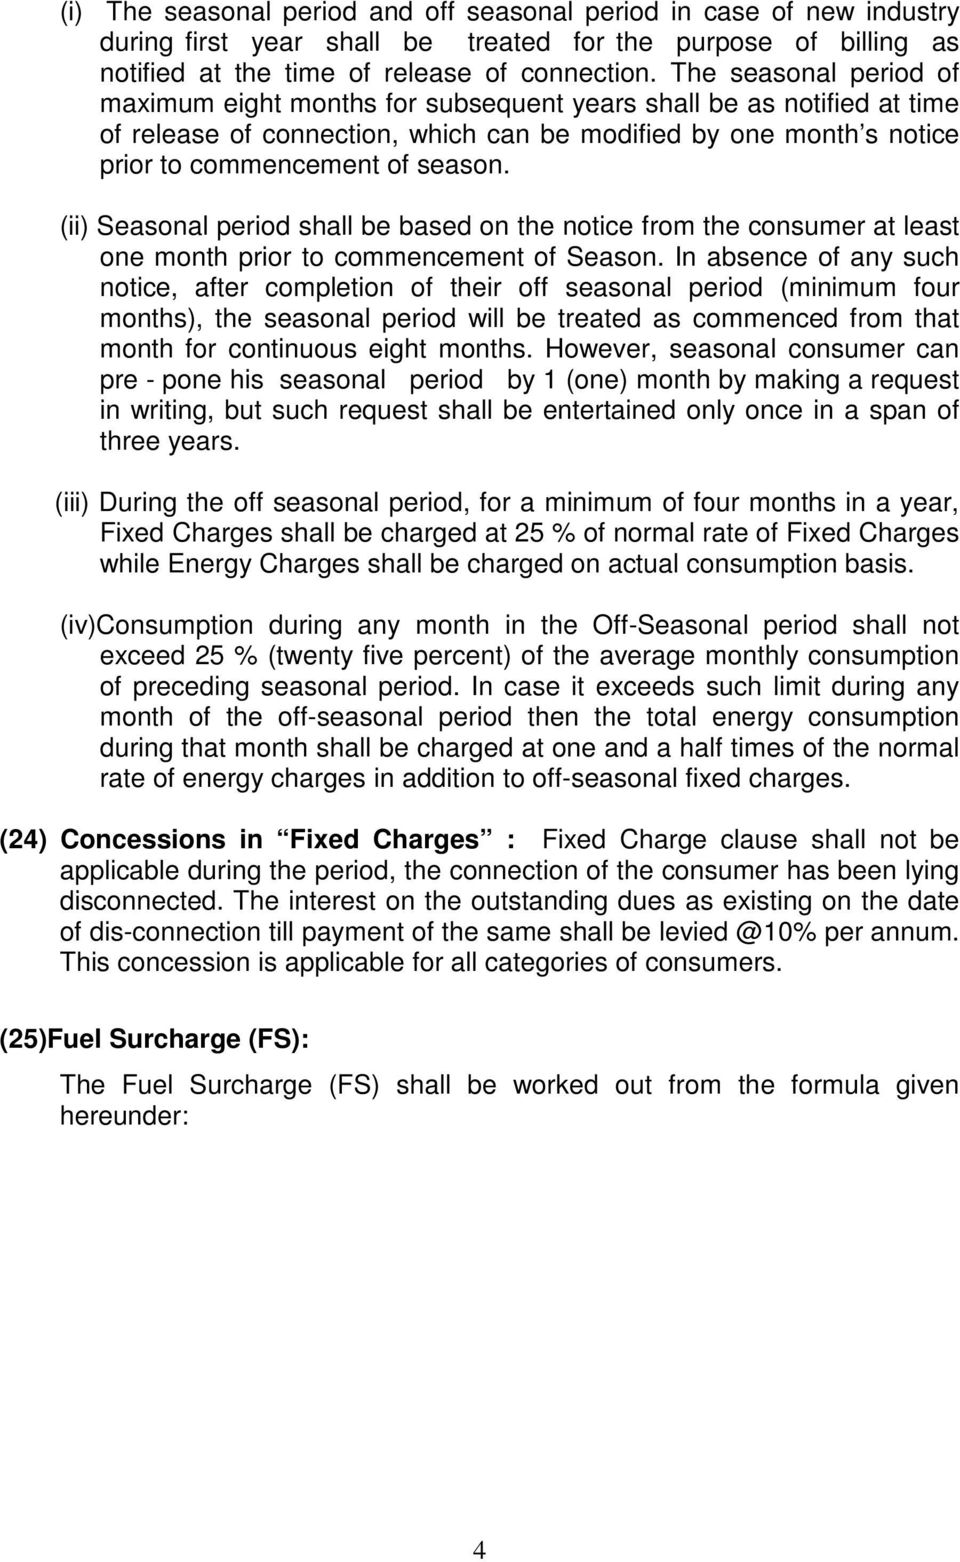 (ii) Seasonal period shall be based on the notice from the consumer at least one month prior to commencement of Season.